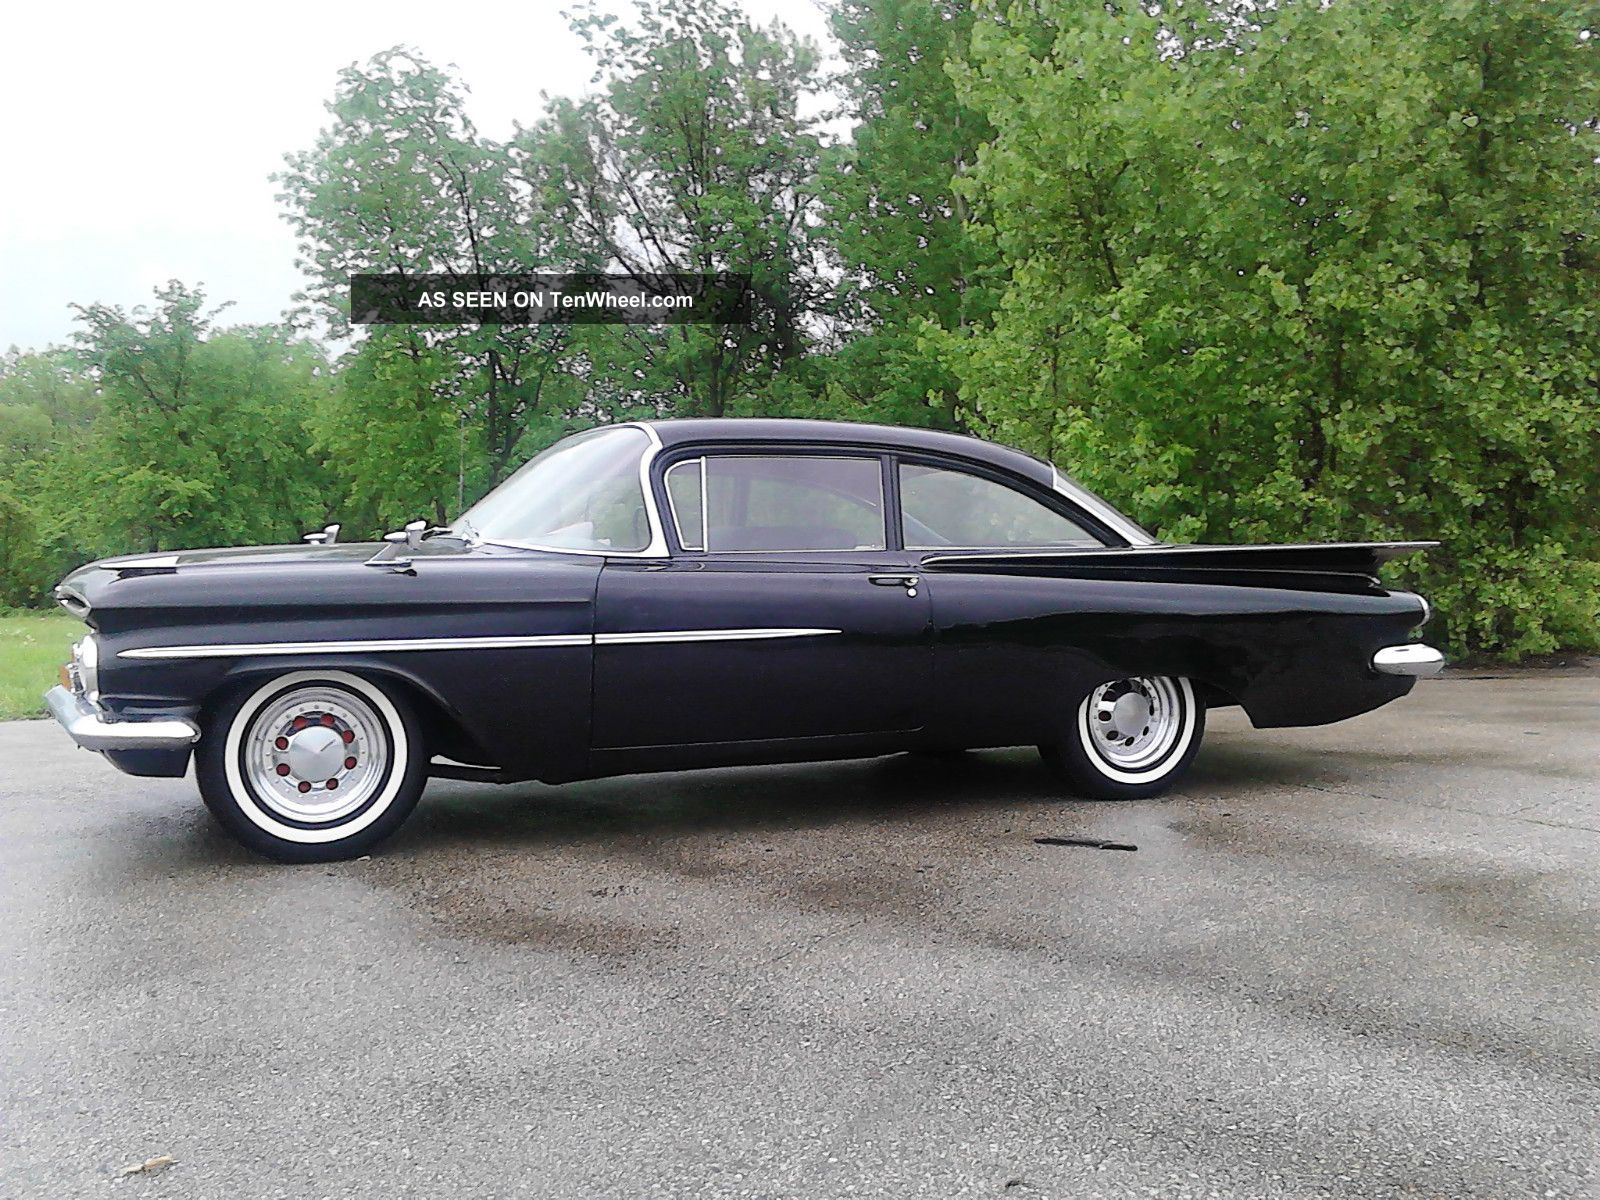 1959 Chevrolet Impala Biscayne Impala photo